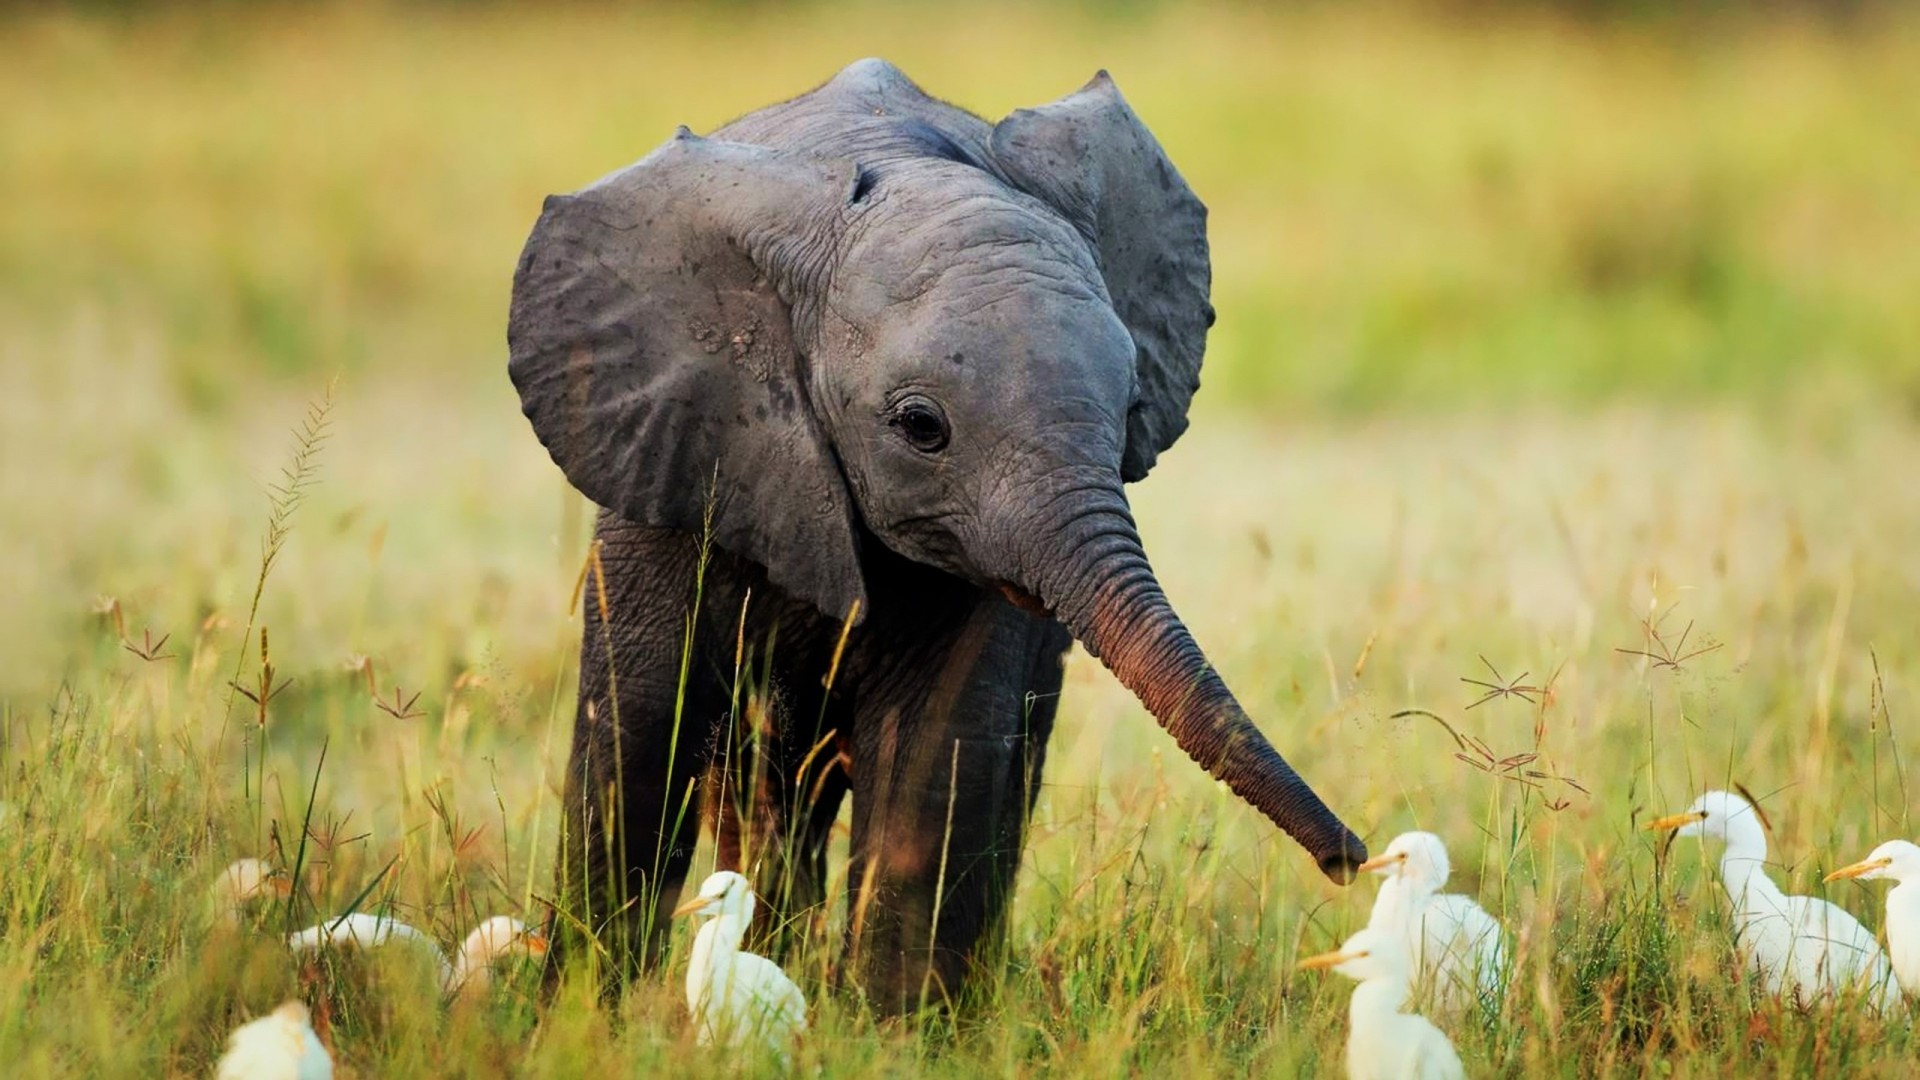 Elephant. Say. Download This Wallpaper …